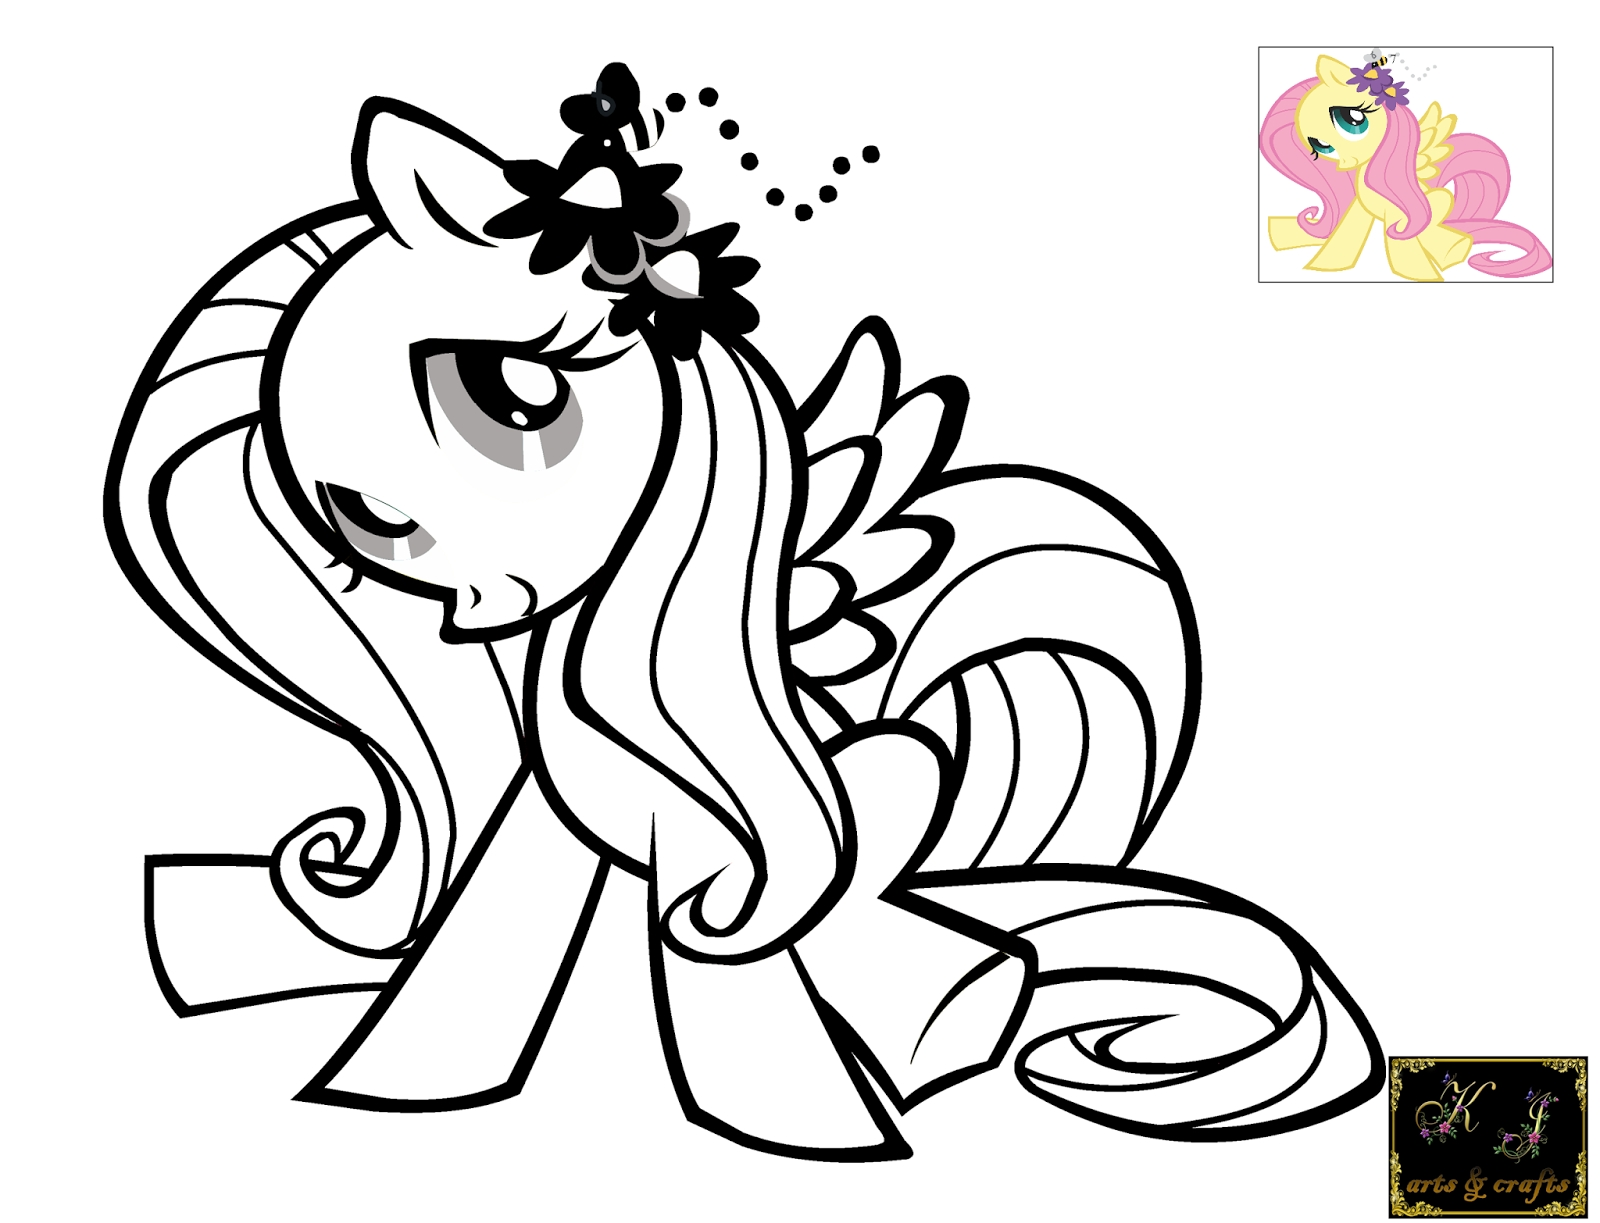 fluttershy coloring pages - fluttershy printable coloring pages